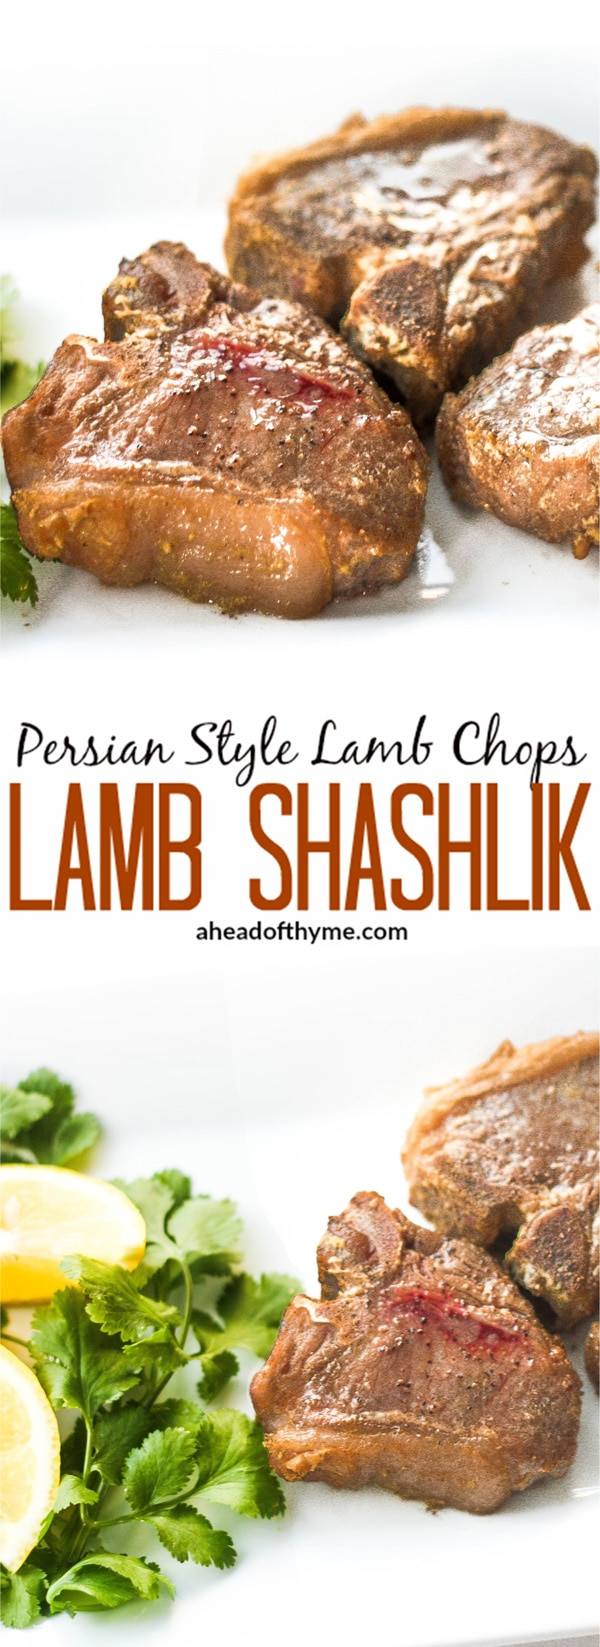 Persian Style Lamb Chops (Lamb Shashlik): Juicy, tender and bursting flavour, lamb shashlik will be your new favourite way to make lamb chops.